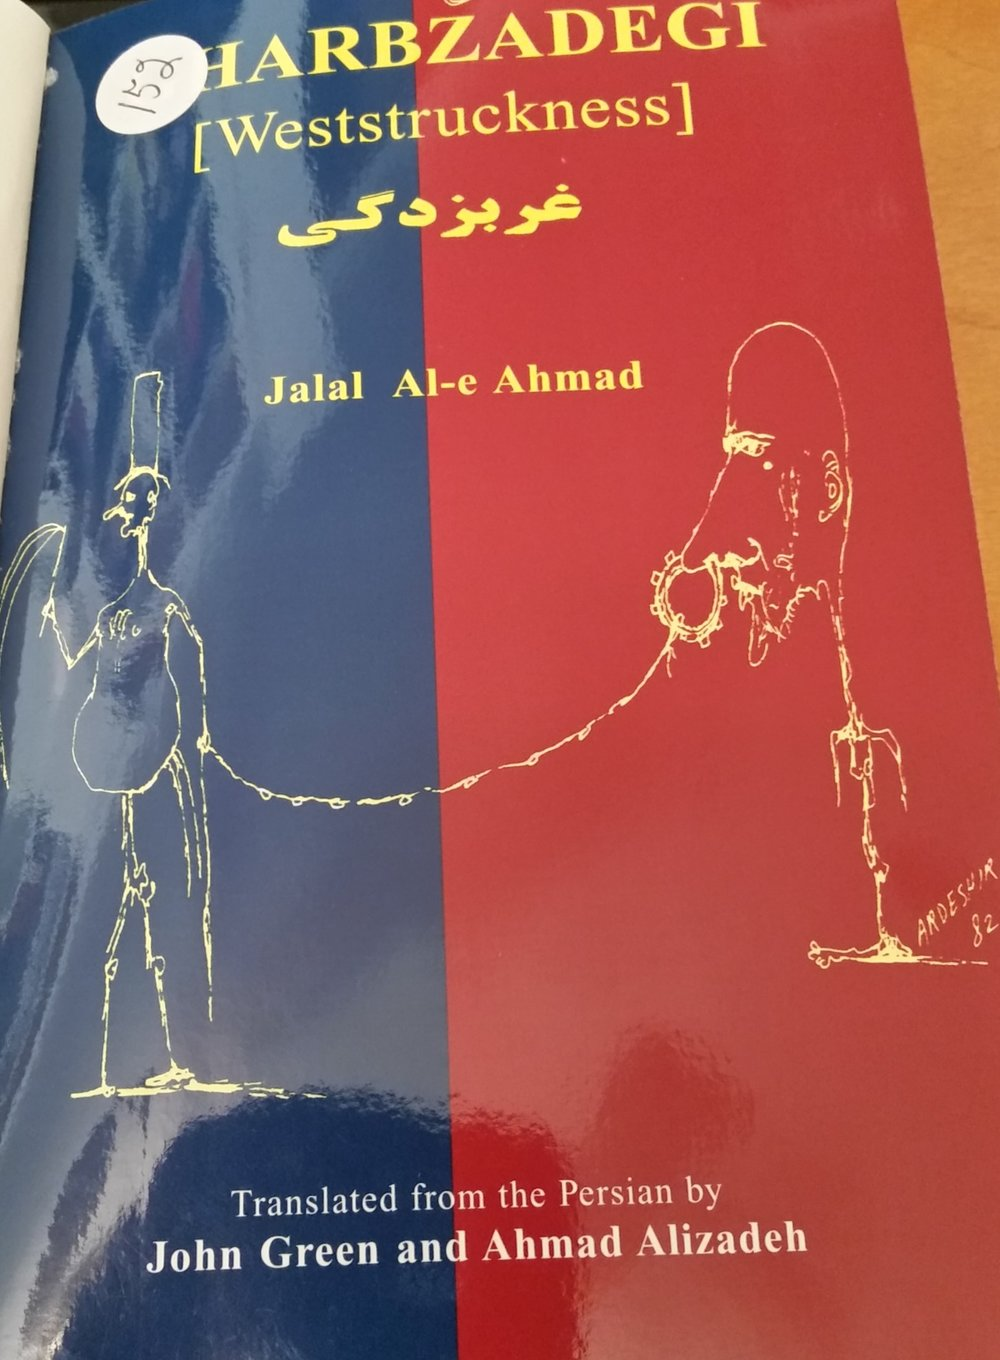 ArtsAndAdab is expanding its purview for the next several days to present some drawings from the 1997 Mazda Publishers edition of Gharbzadegi (Weststruckness) by Jalal Al-i Ahmad, translated from the Persian by John Green and Ahmad Alizadeh in 1982.